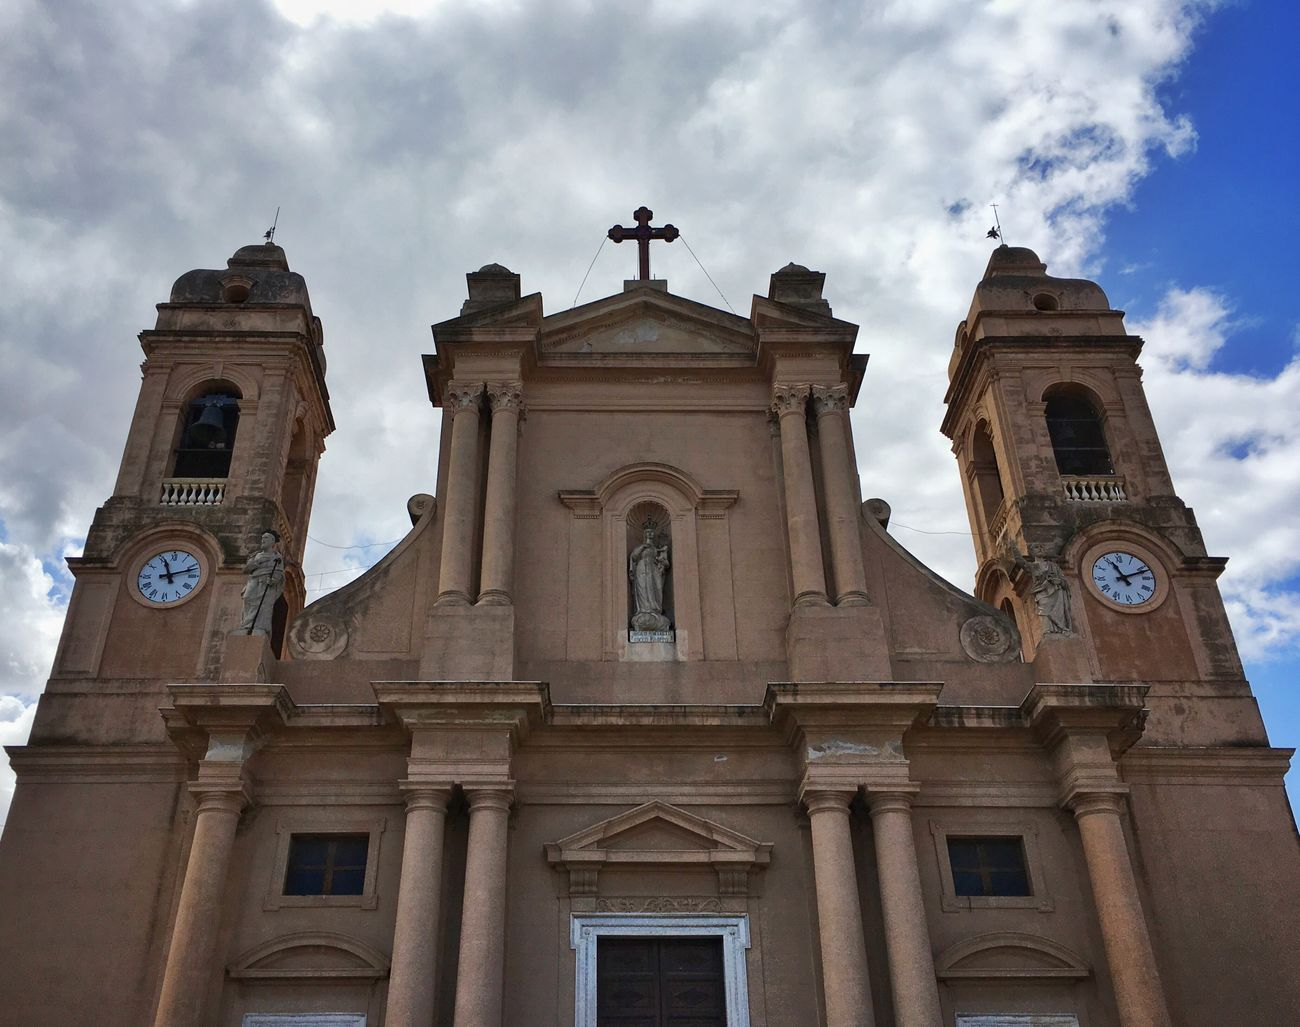 Building Exterior Architecture Built Structure Sky Façade Religion Low Angle View Outdoors Cloud - Sky Travel Destinations Spirituality No People Clock Church Italy Sicily Sicilia Italia Travel Traveling Travel Photography Streetphotography Sky And Clouds Art